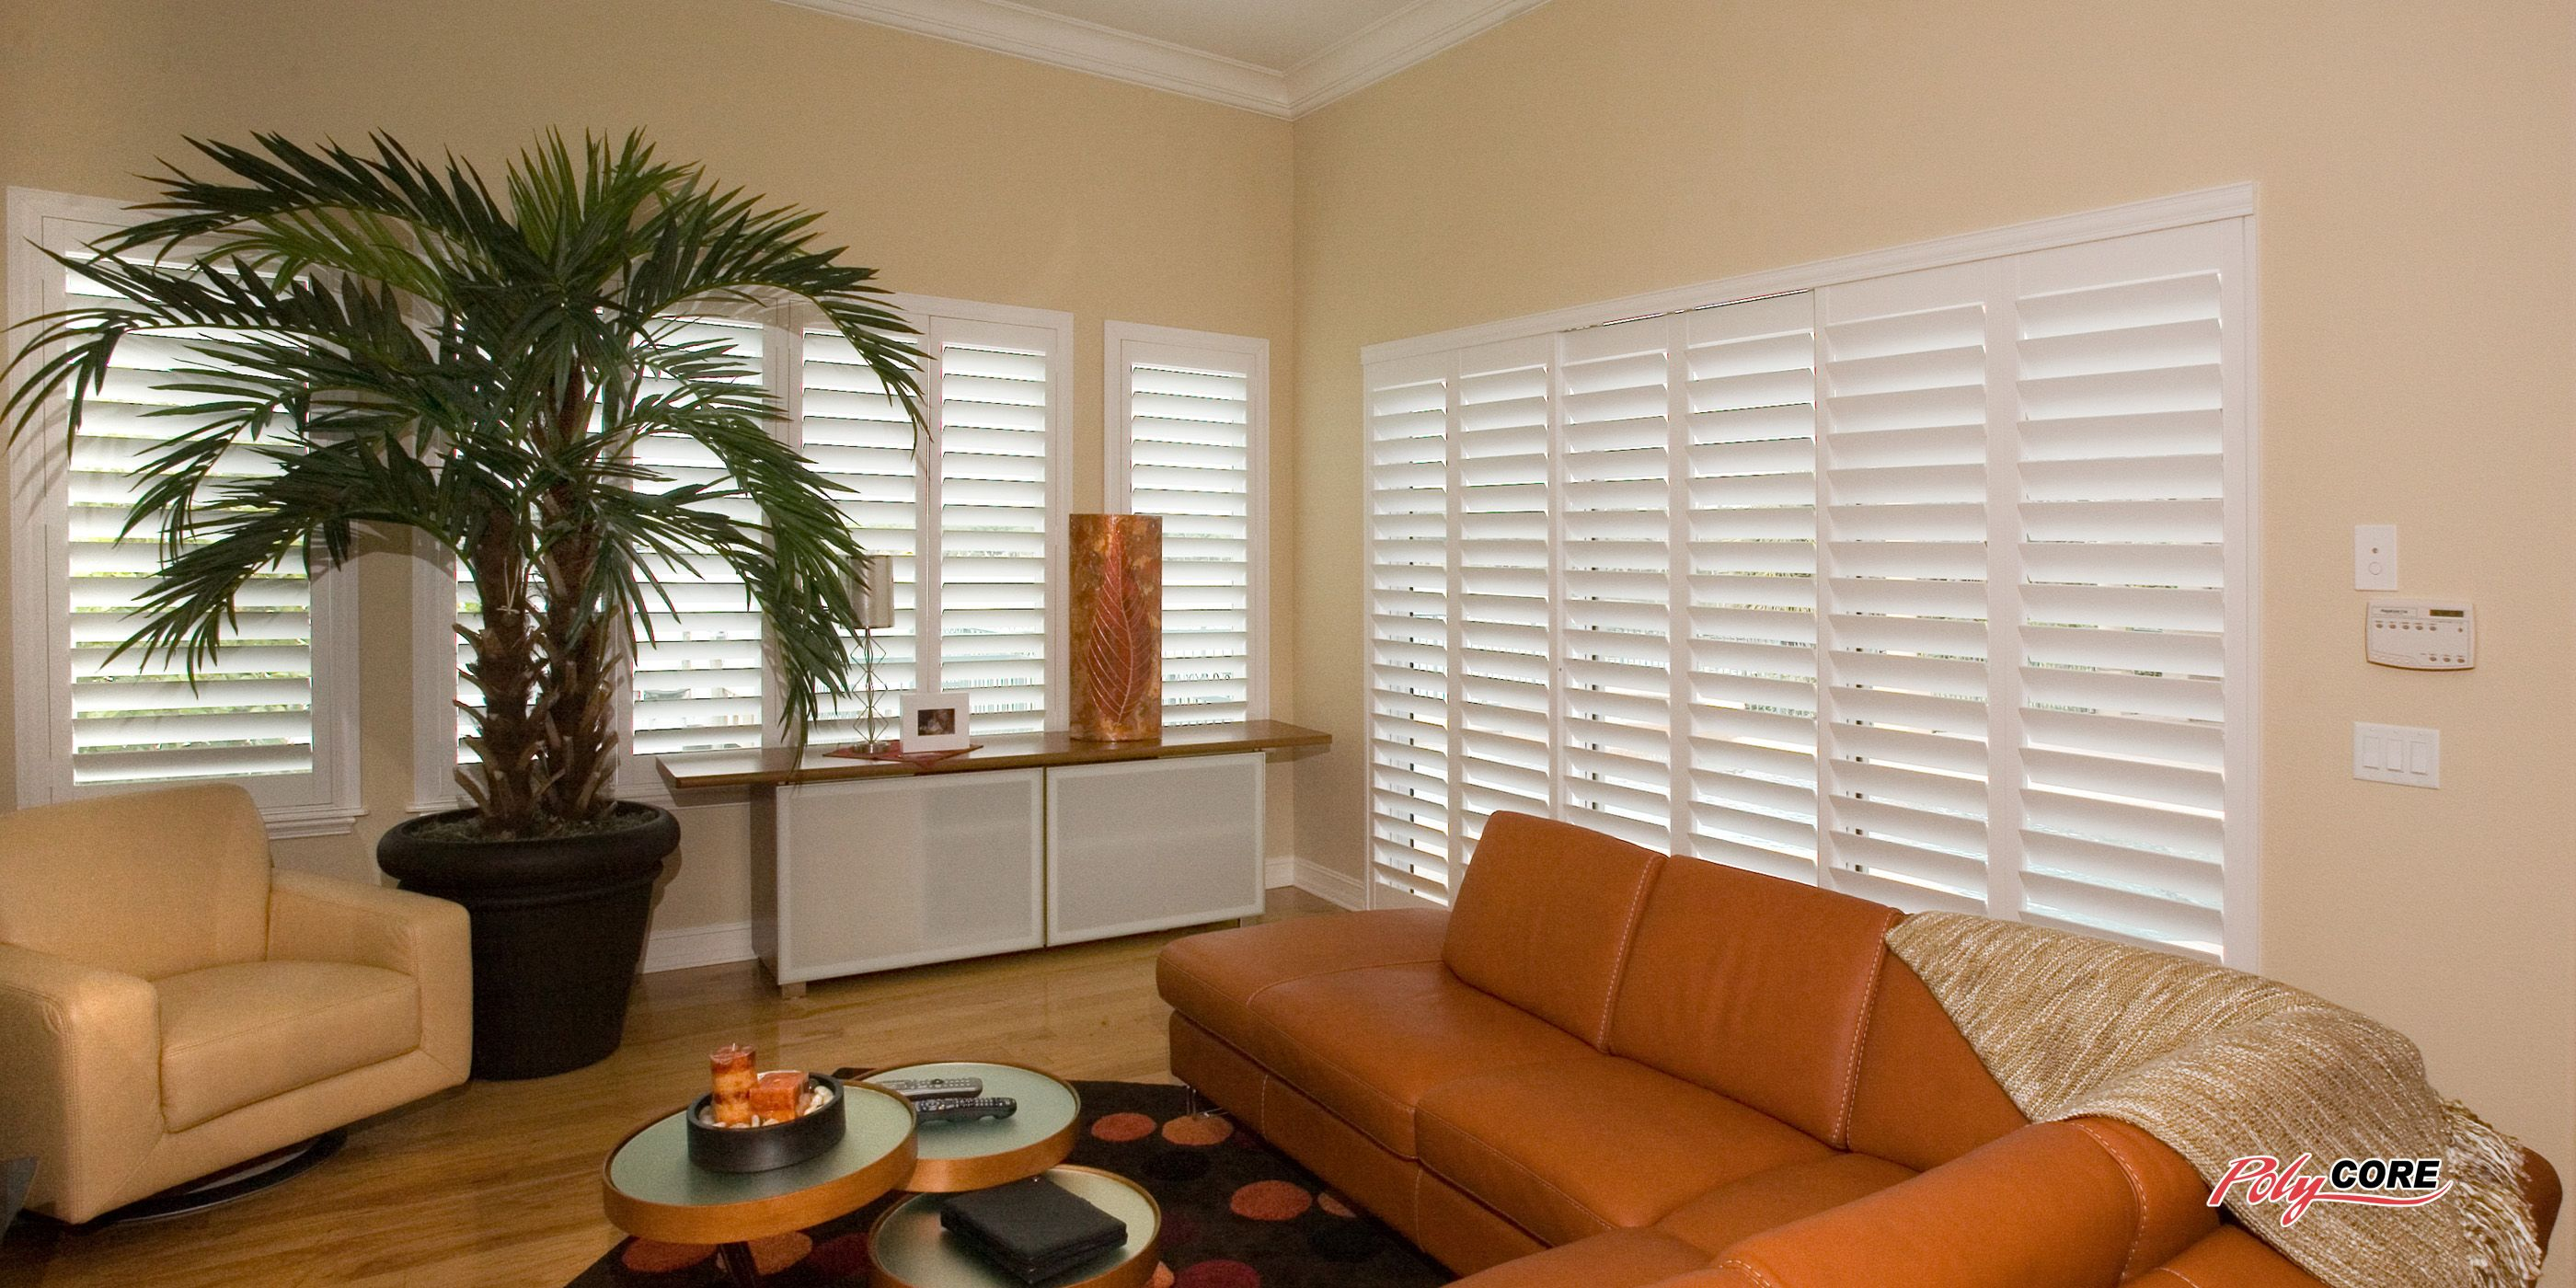 Buy Best Polycore Plantation Shutters Polycore Shutters Made By Sunland  Shutters Are The Worldu0027s Just Strong